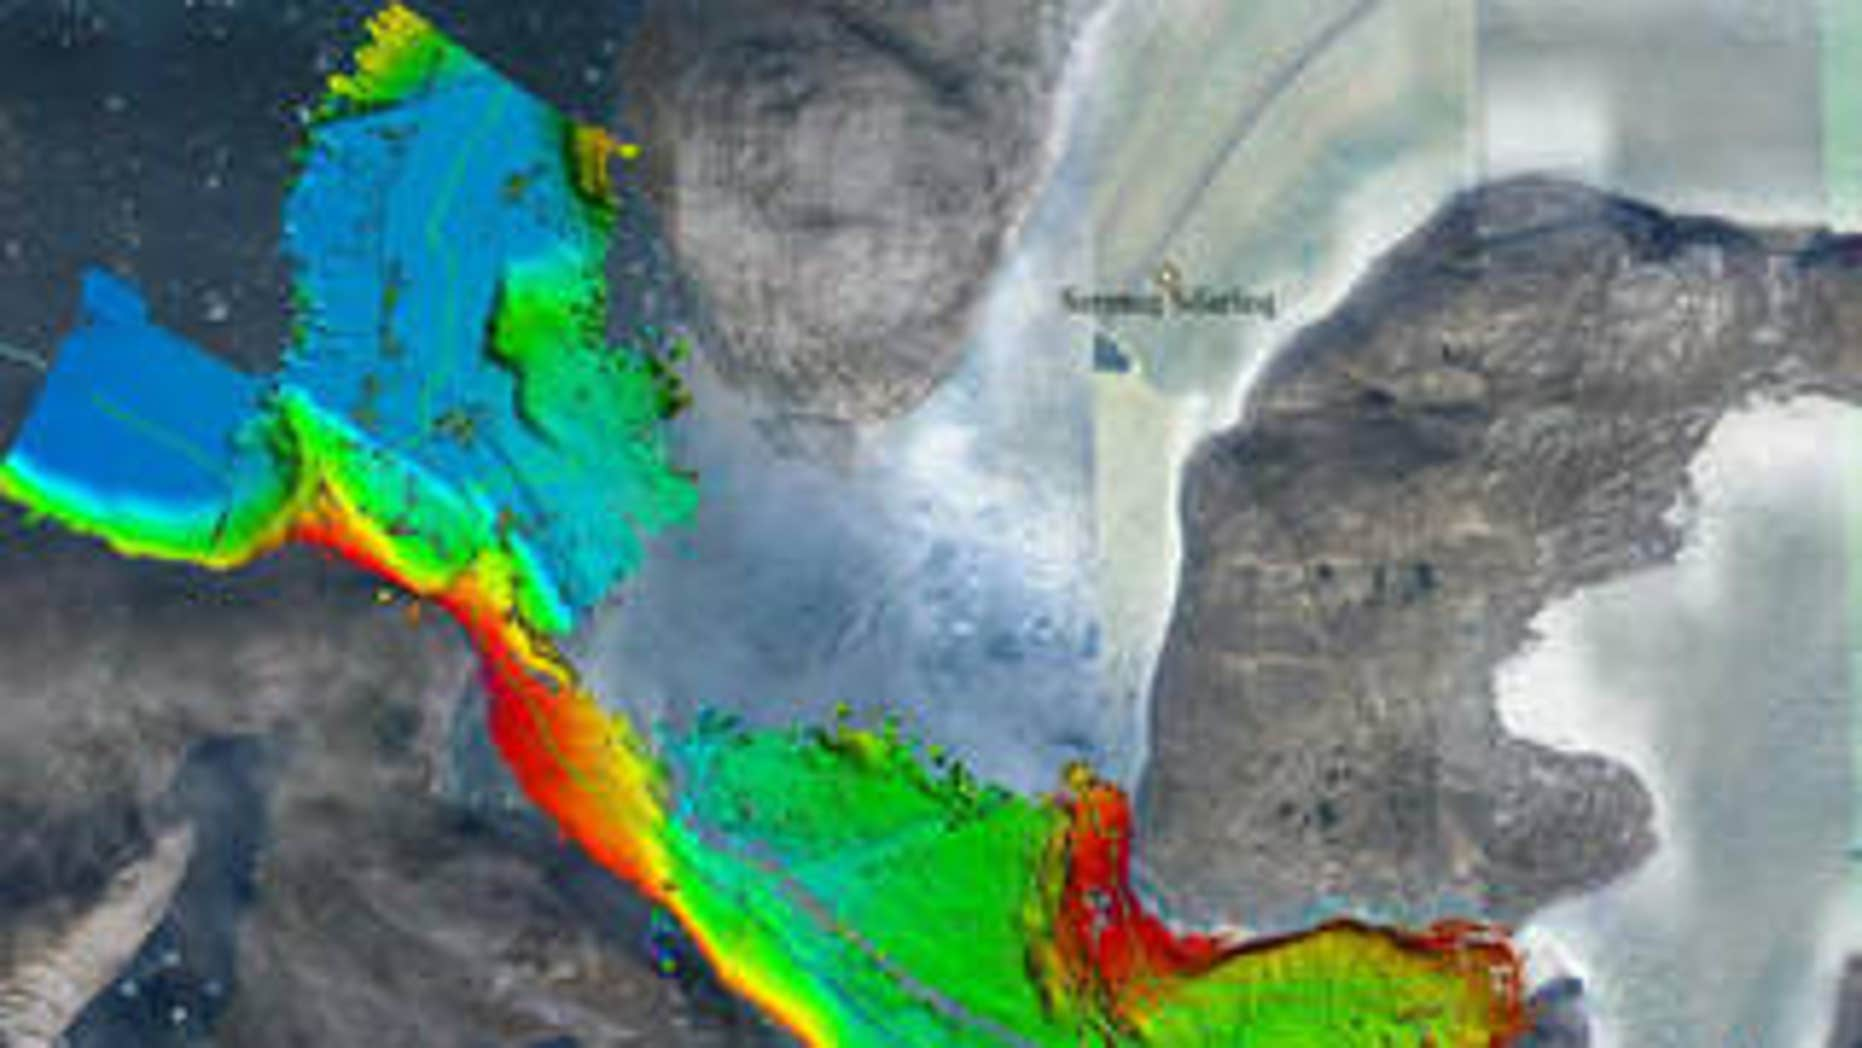 Seafloor depths on Greenland's west coast, measured by sonar aboard a research ship as part of the OMG project. Red and yellow are shallower areas, greens and blues deeper. The thin green line is the ship's path. The data give a better idea of where warm ocean water can reach glaciers.